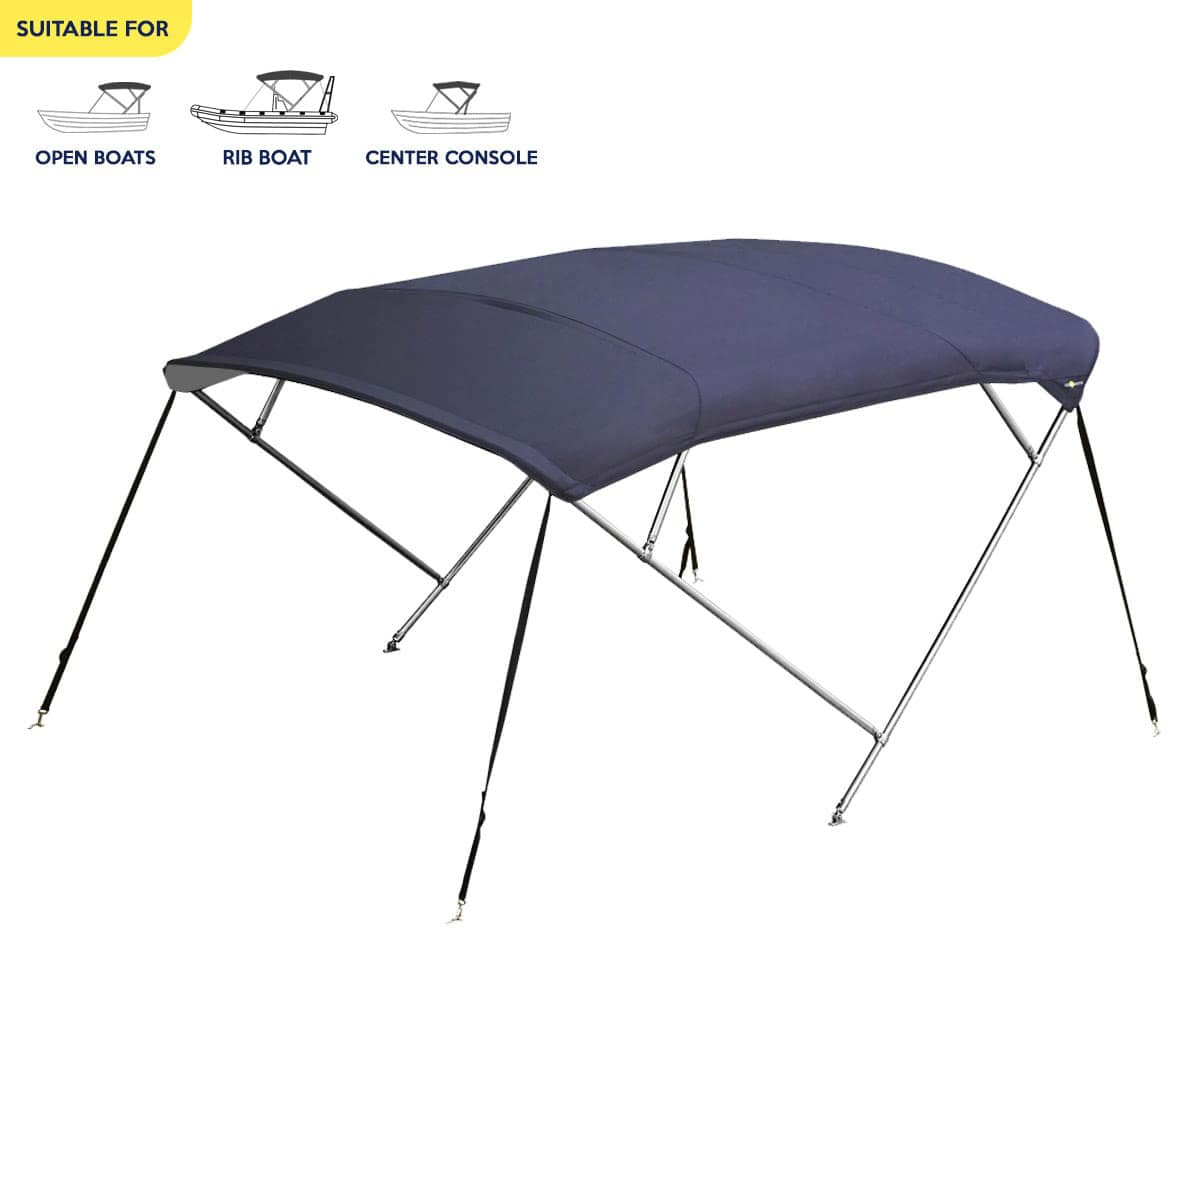 Stainless Steel 4 Bow Bimini Top/Canopy